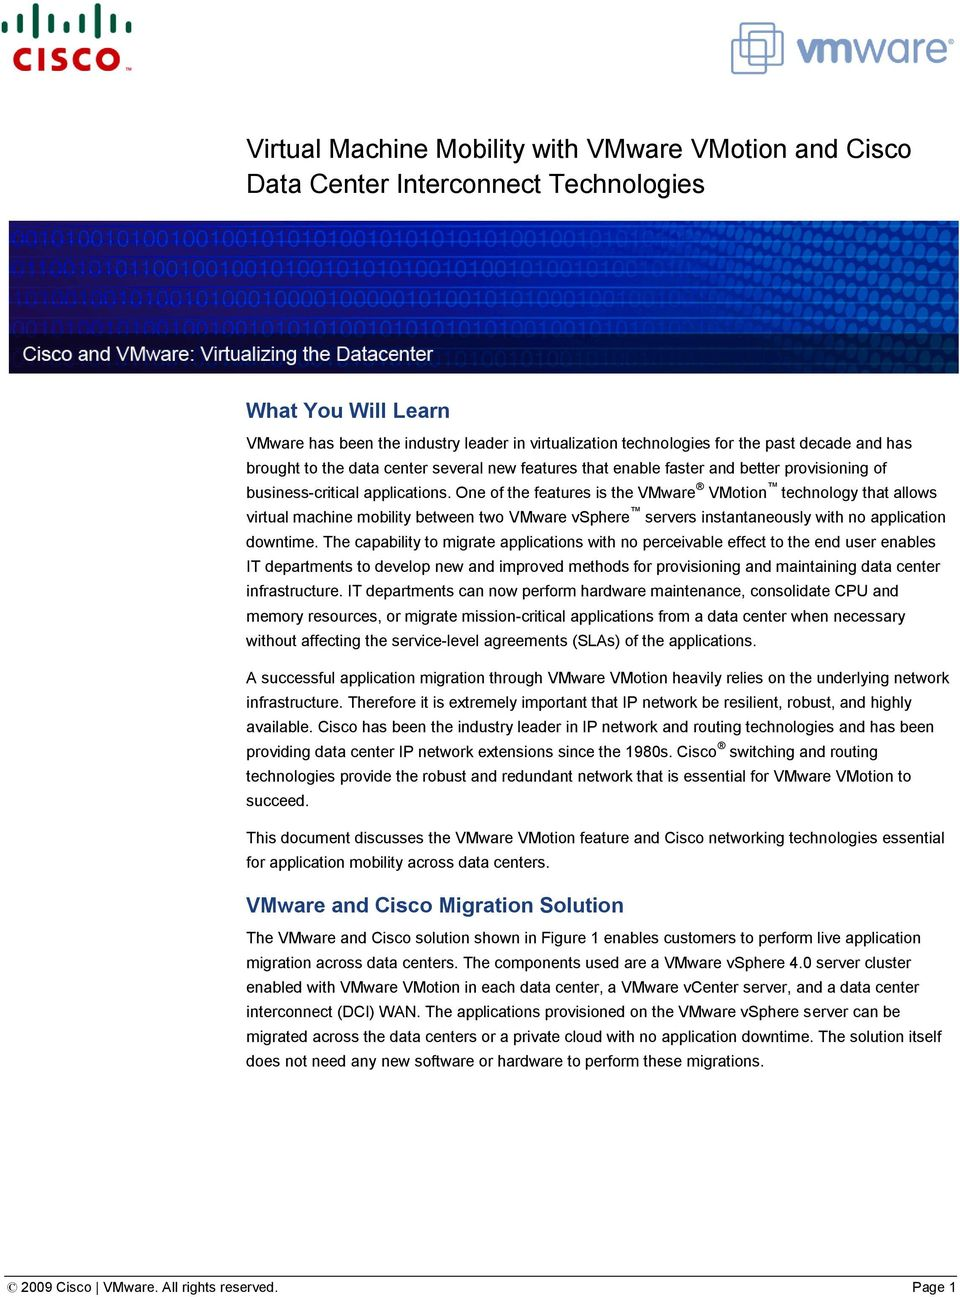 One of the features is the VMware VMotion technology that allows virtual machine mobility between two VMware vsphere servers instantaneously with no application downtime.